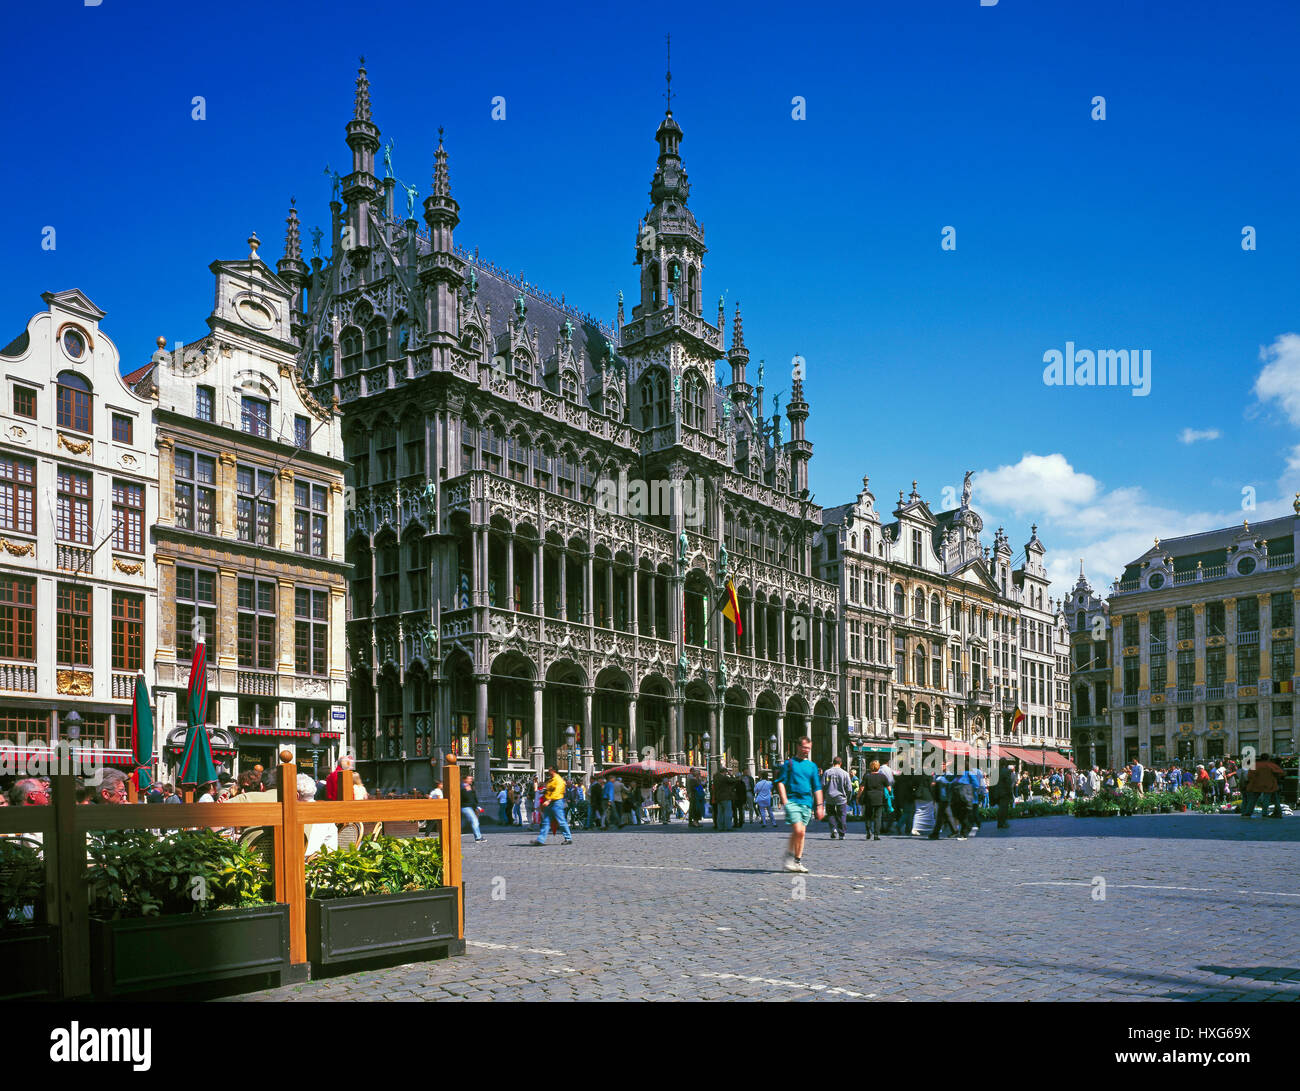 The Kings Palace, Grand Place, Brussels, Belgium. Stock Photo